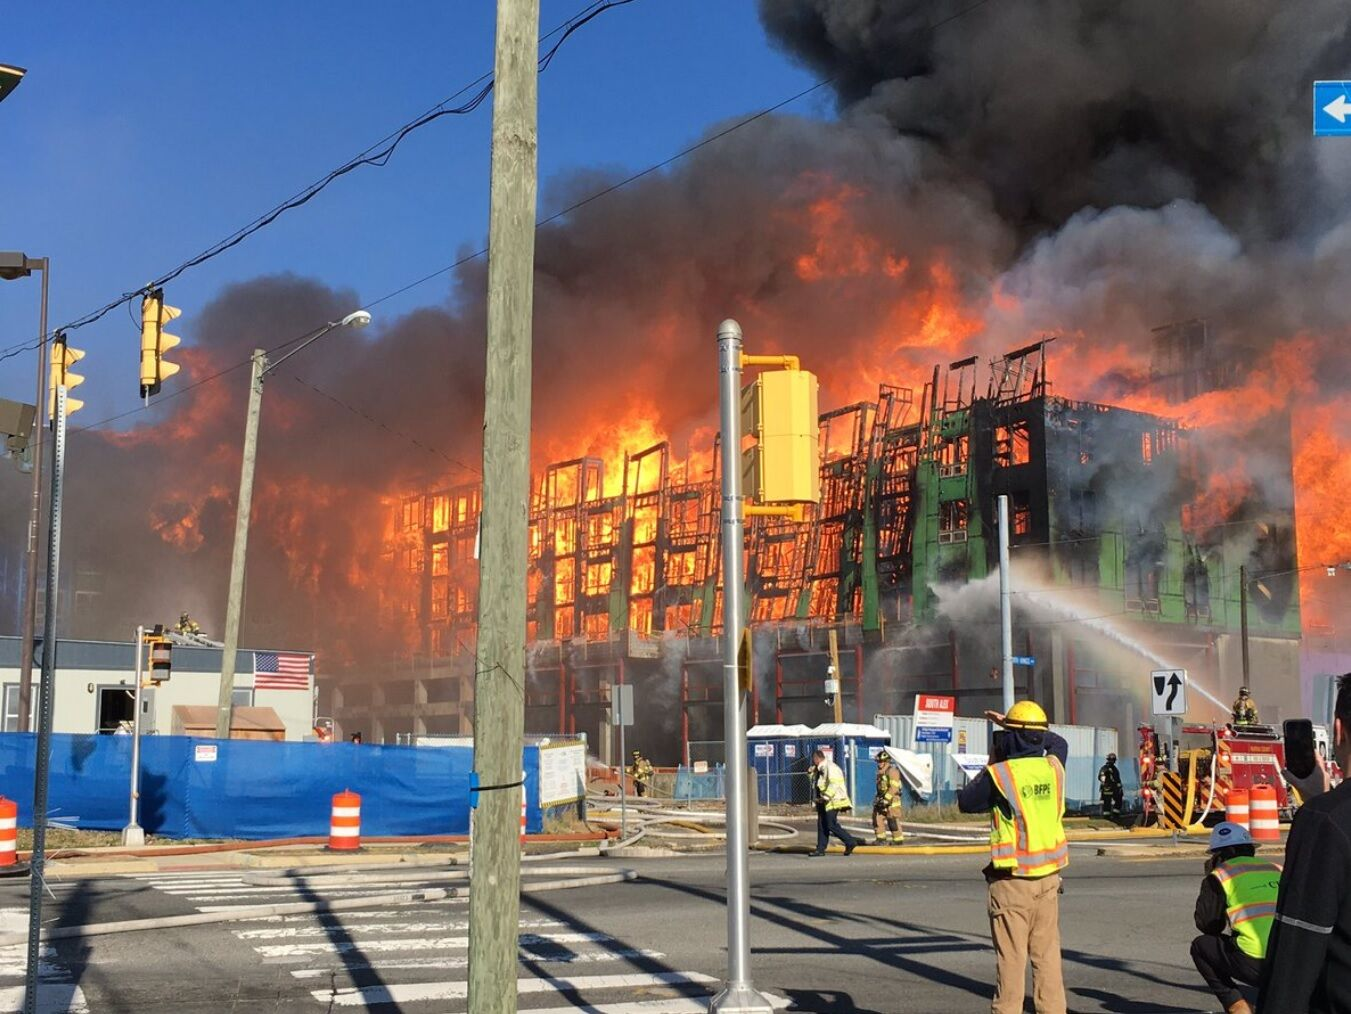 Westlake Legal Group 2-1 Massive Fairfax Co. fire caused $48M in damage; sparked by improperly discarded smoking materials virginia news South Alex Local News Jack Moore fire Fairfax County, VA News fairfax county fire